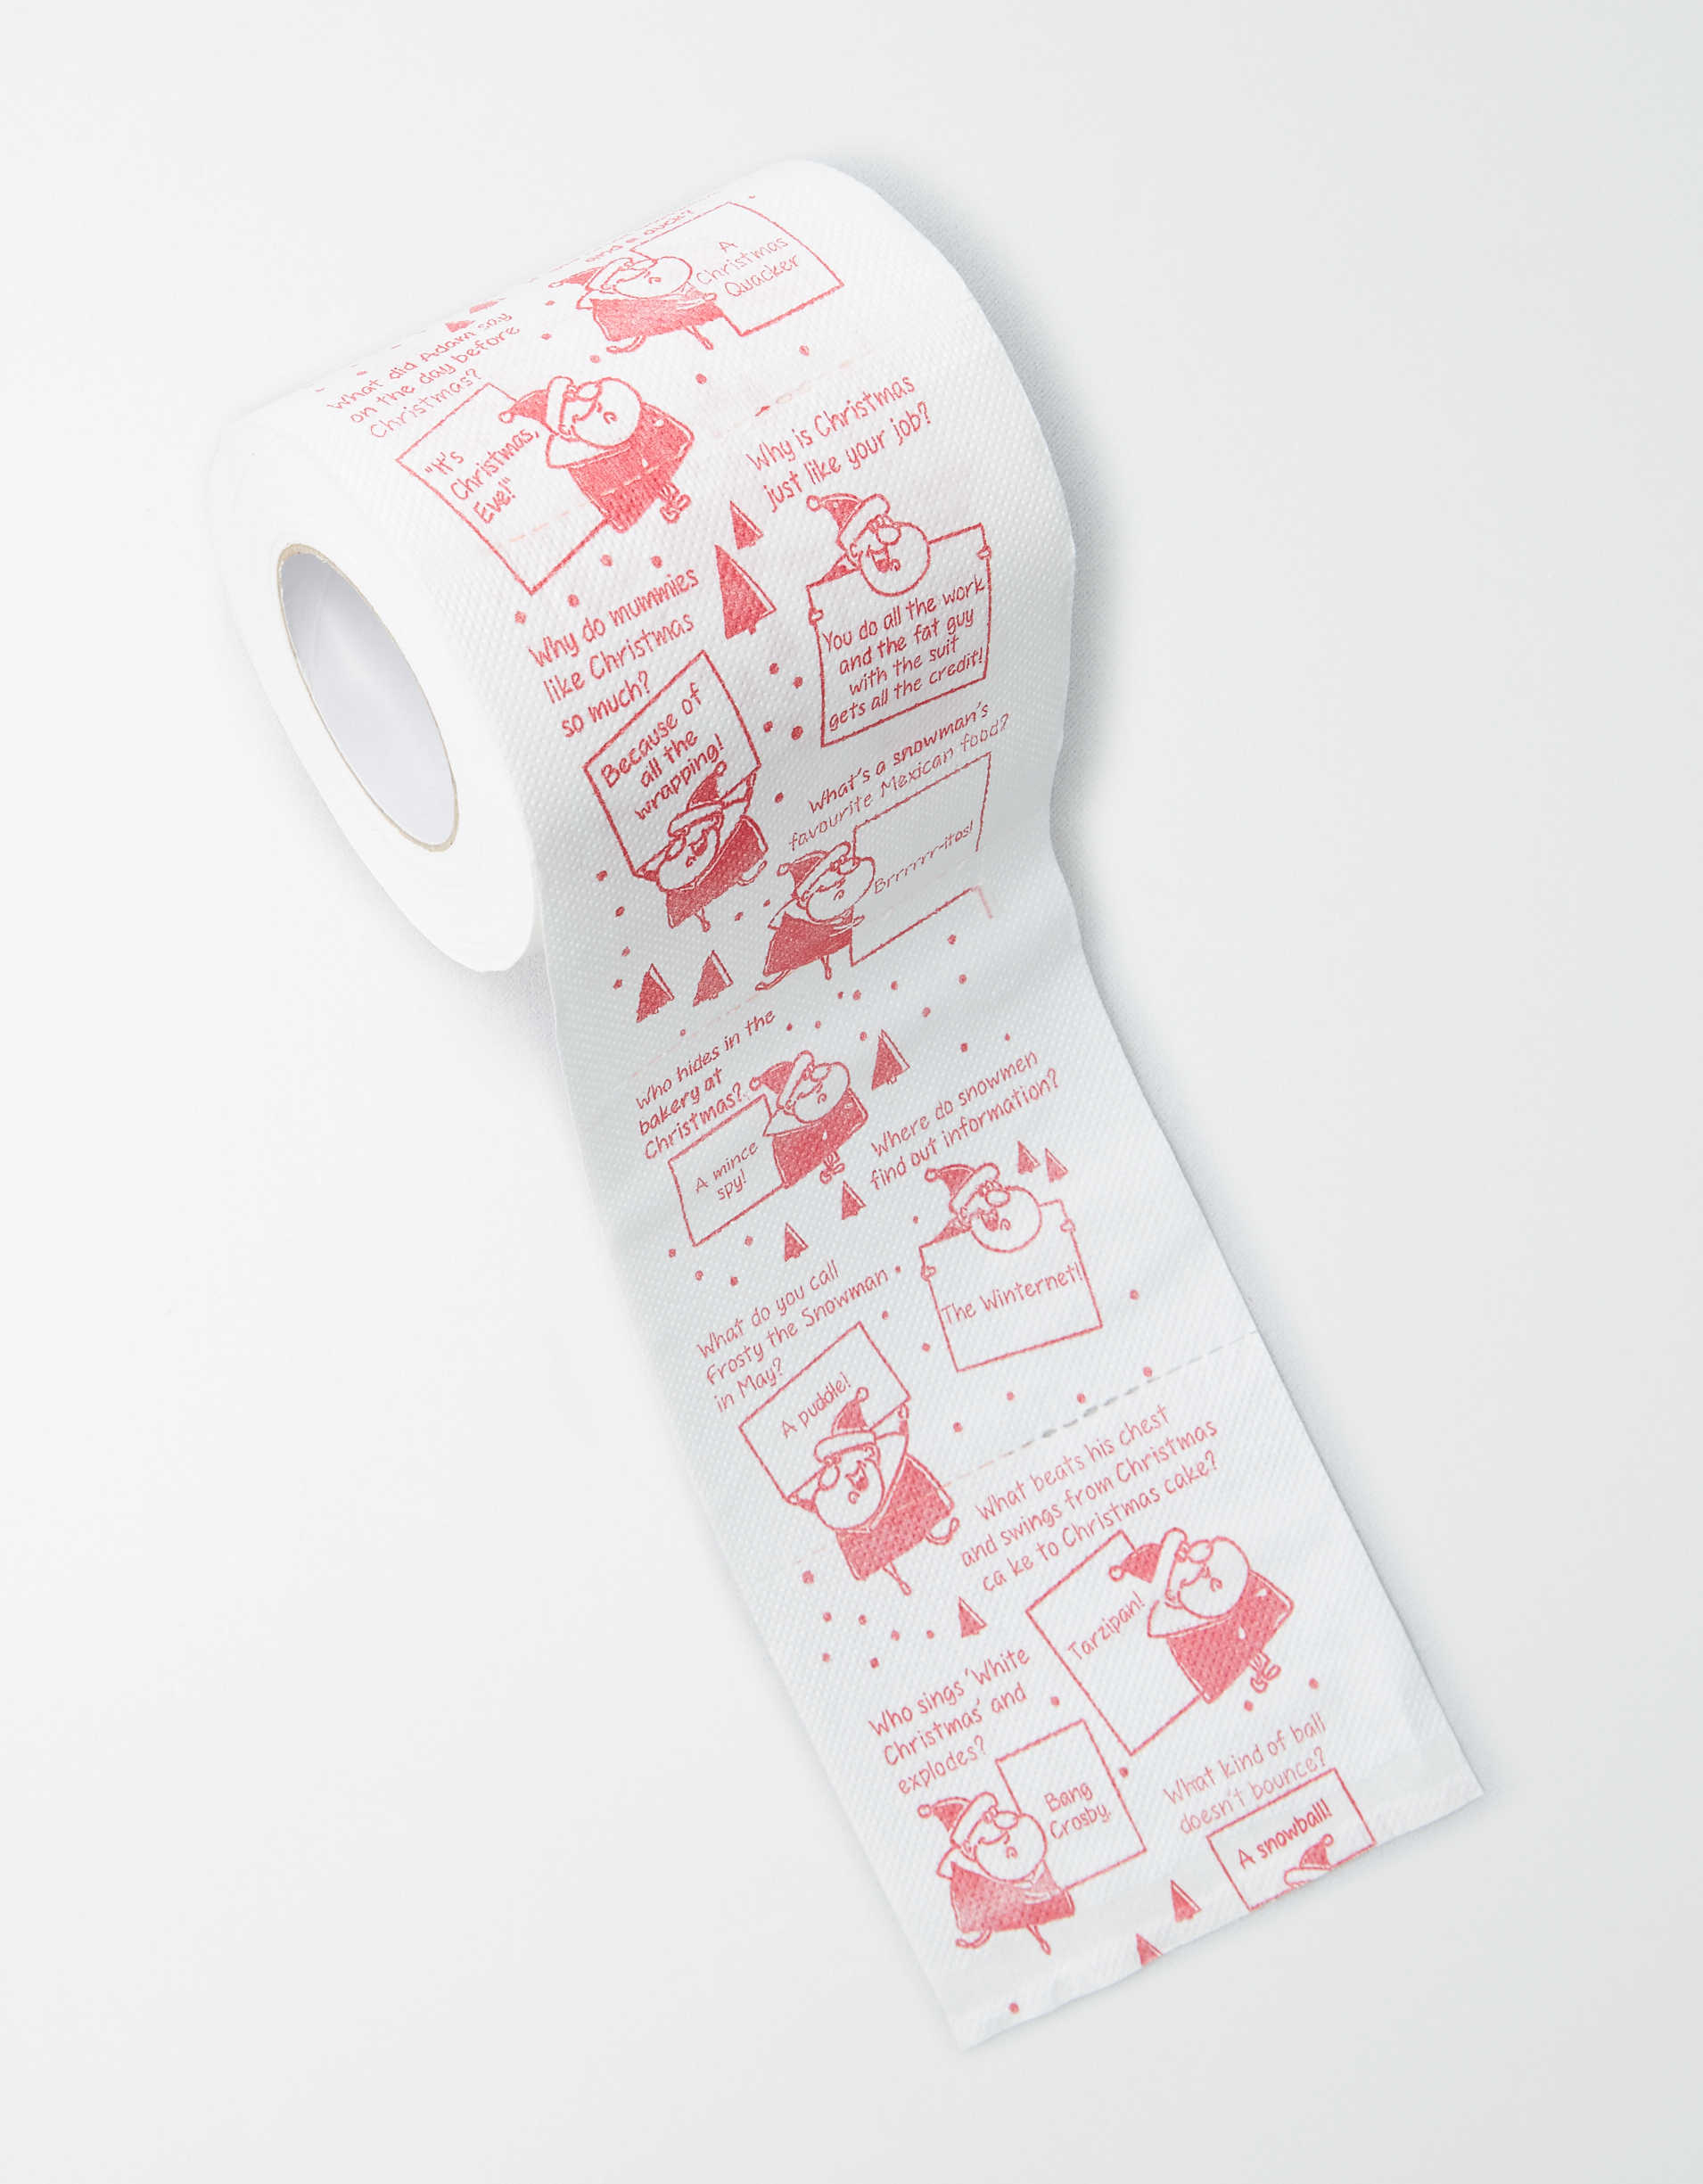 Thumps Up! Christmas Jokes Toilet Paper Roll